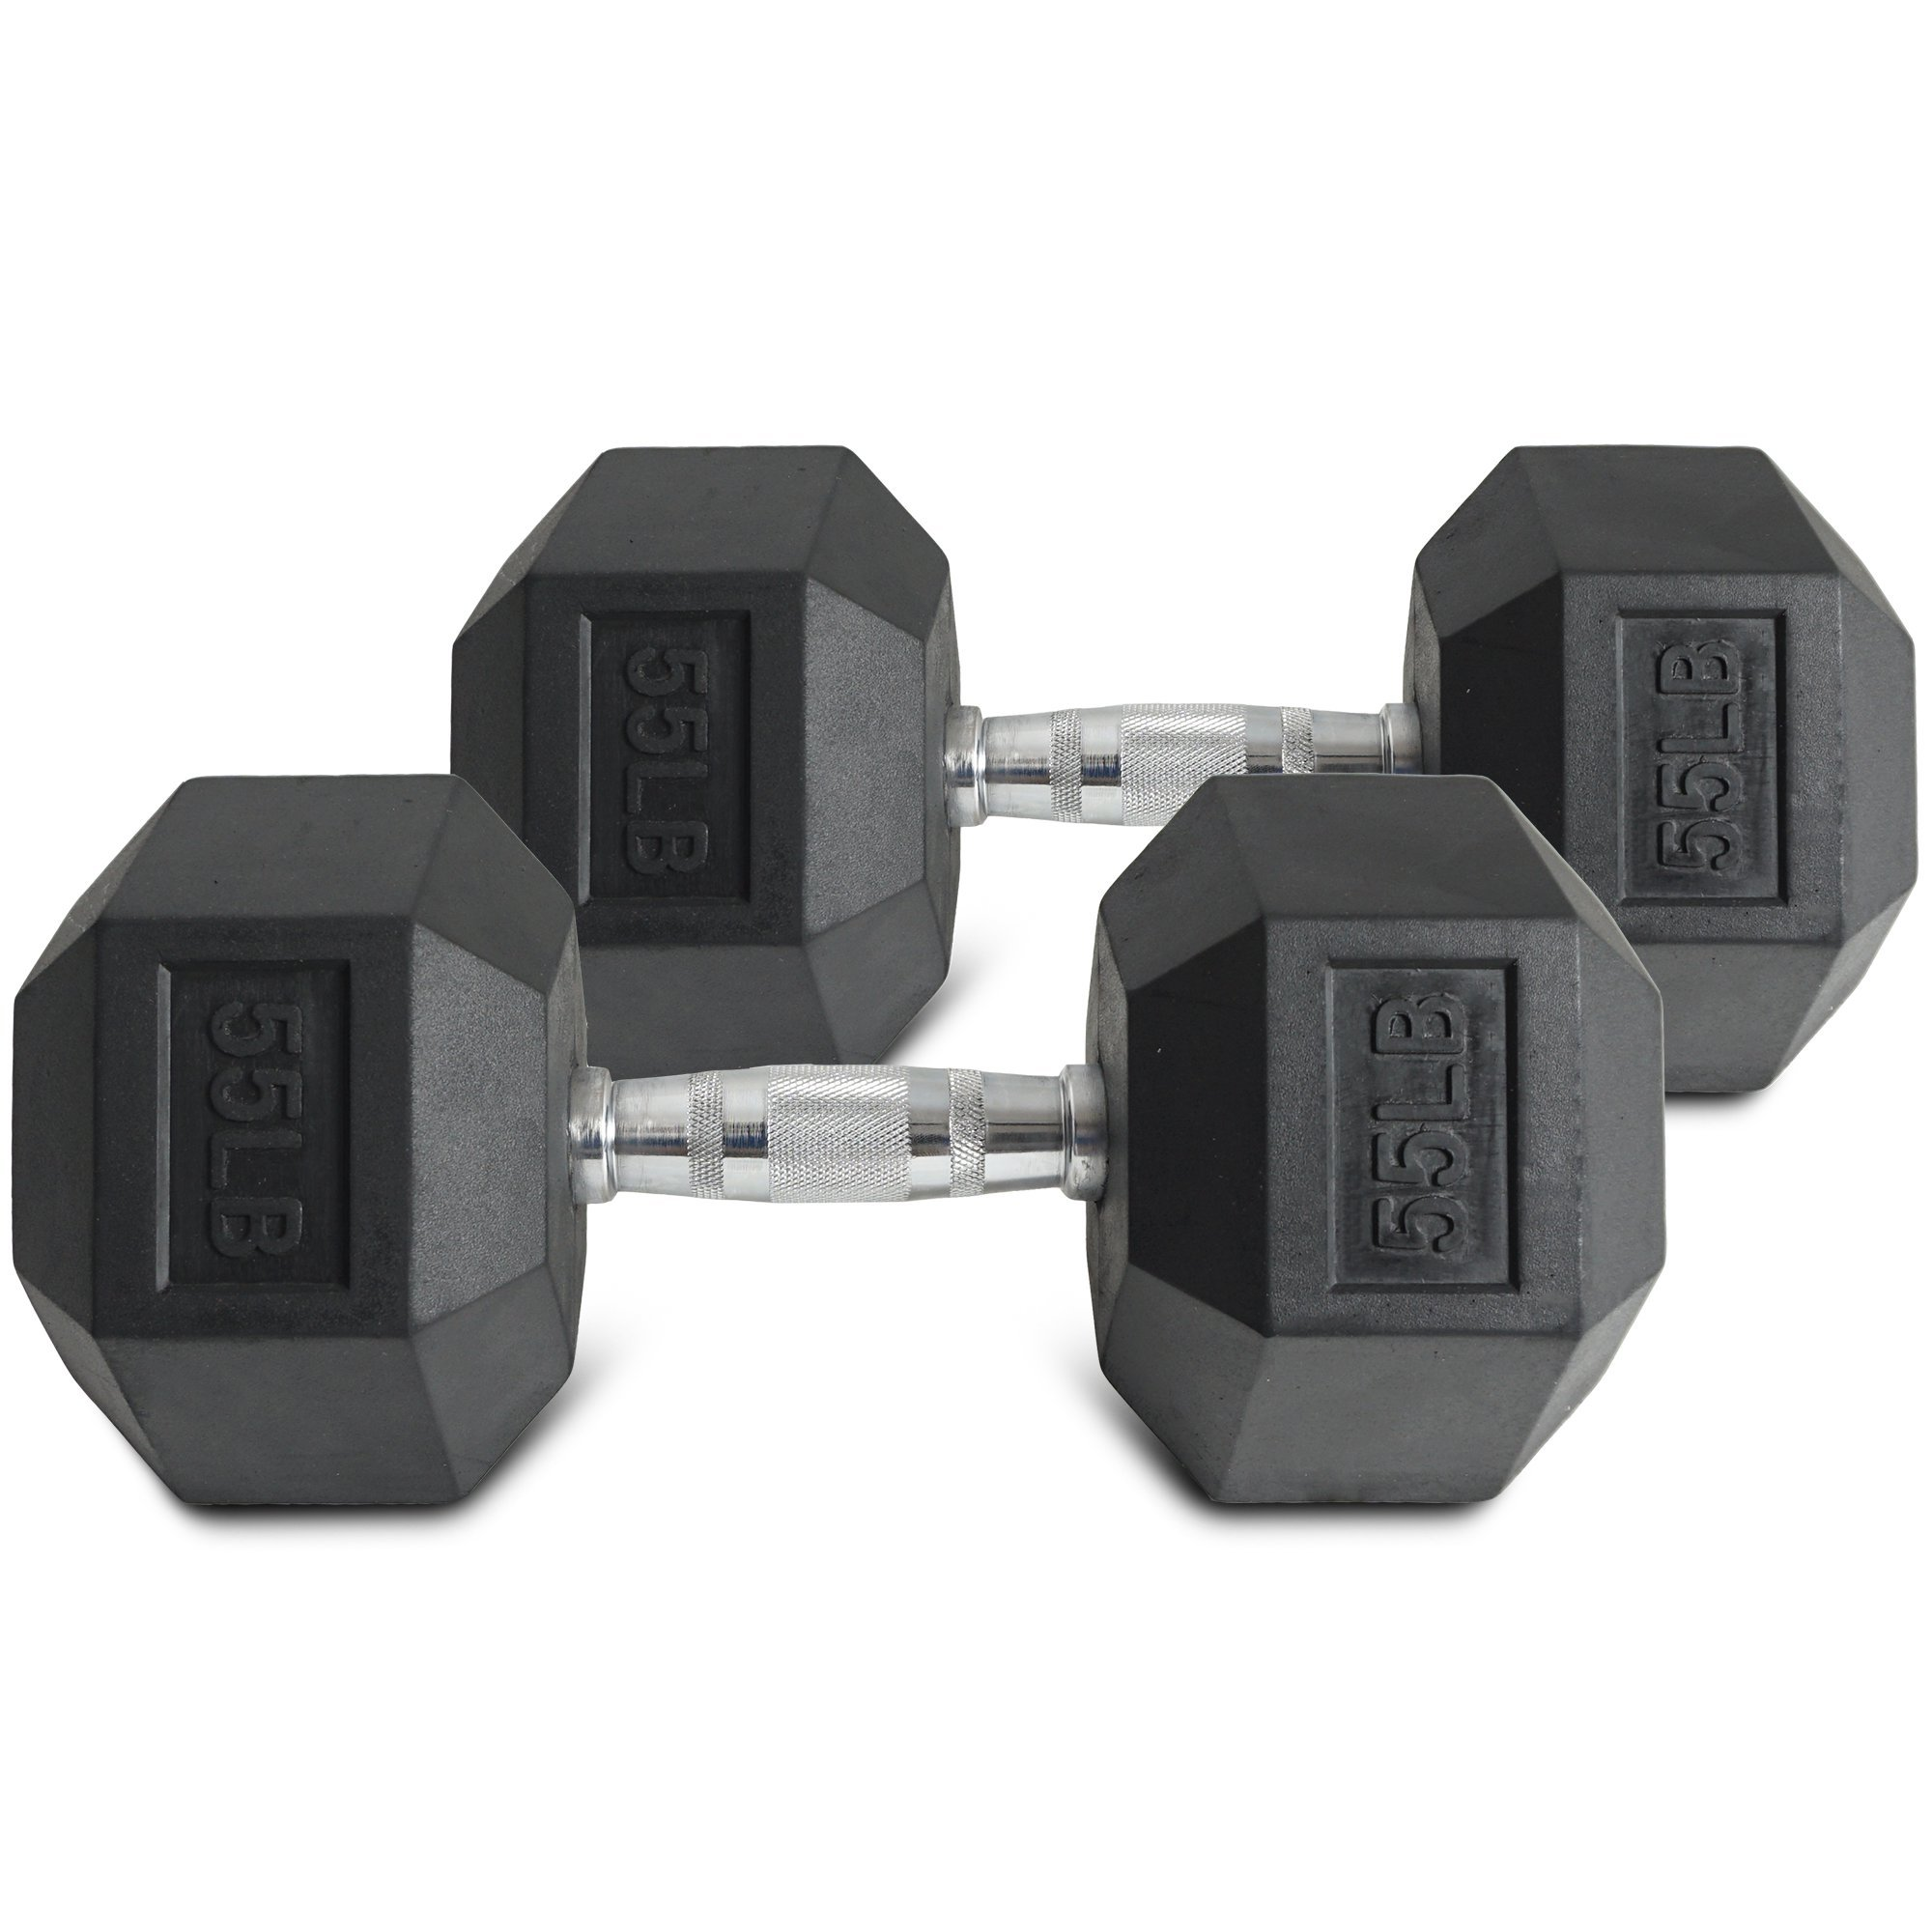 Pair 55 lb Black Rubber Coated Hex Dumbbells Weight Training Set 110 lb Fitness by Titan Fitness (Image #3)